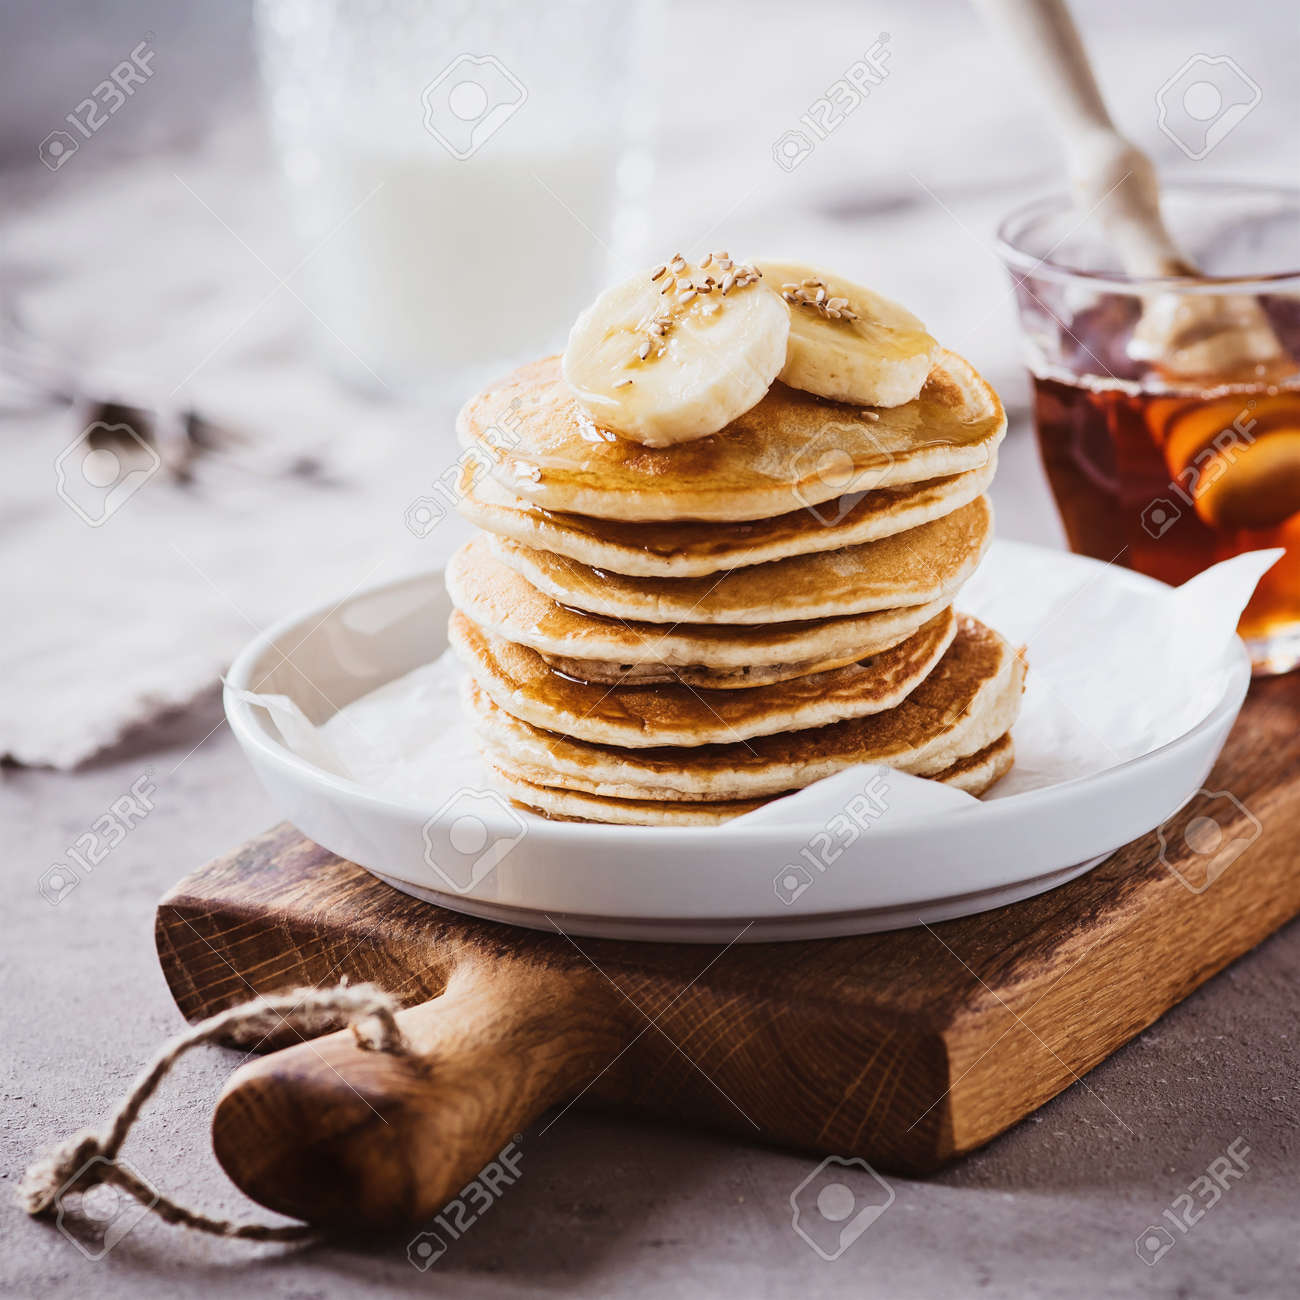 Fresh pancakes with maple syrup and bananas - 133864036